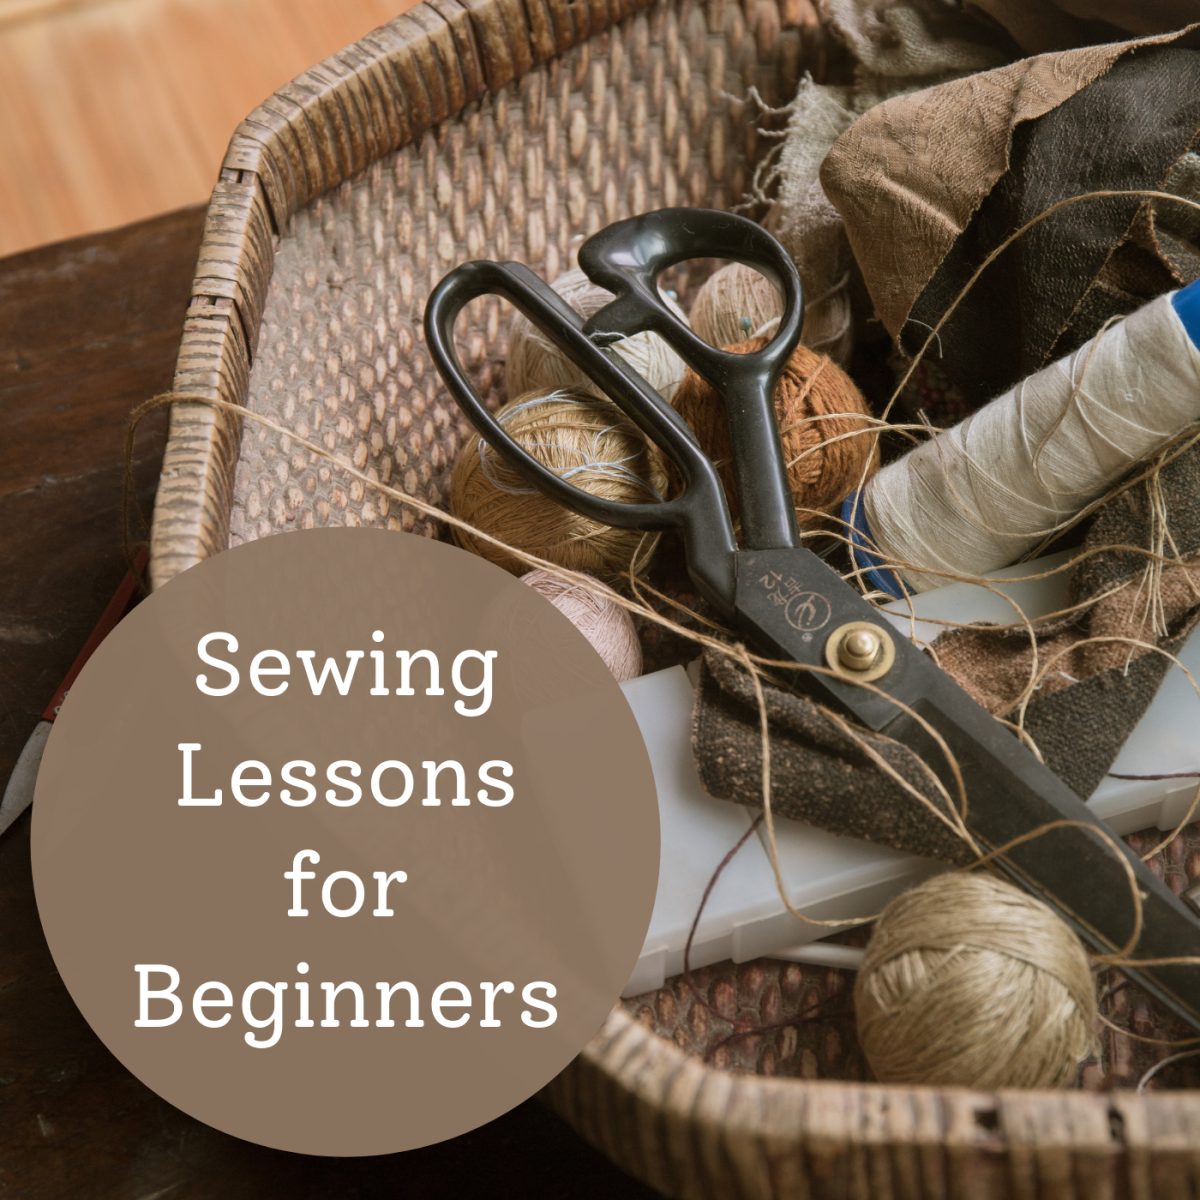 Are you new to sewing? Get some easy-to-follow advice in this article.